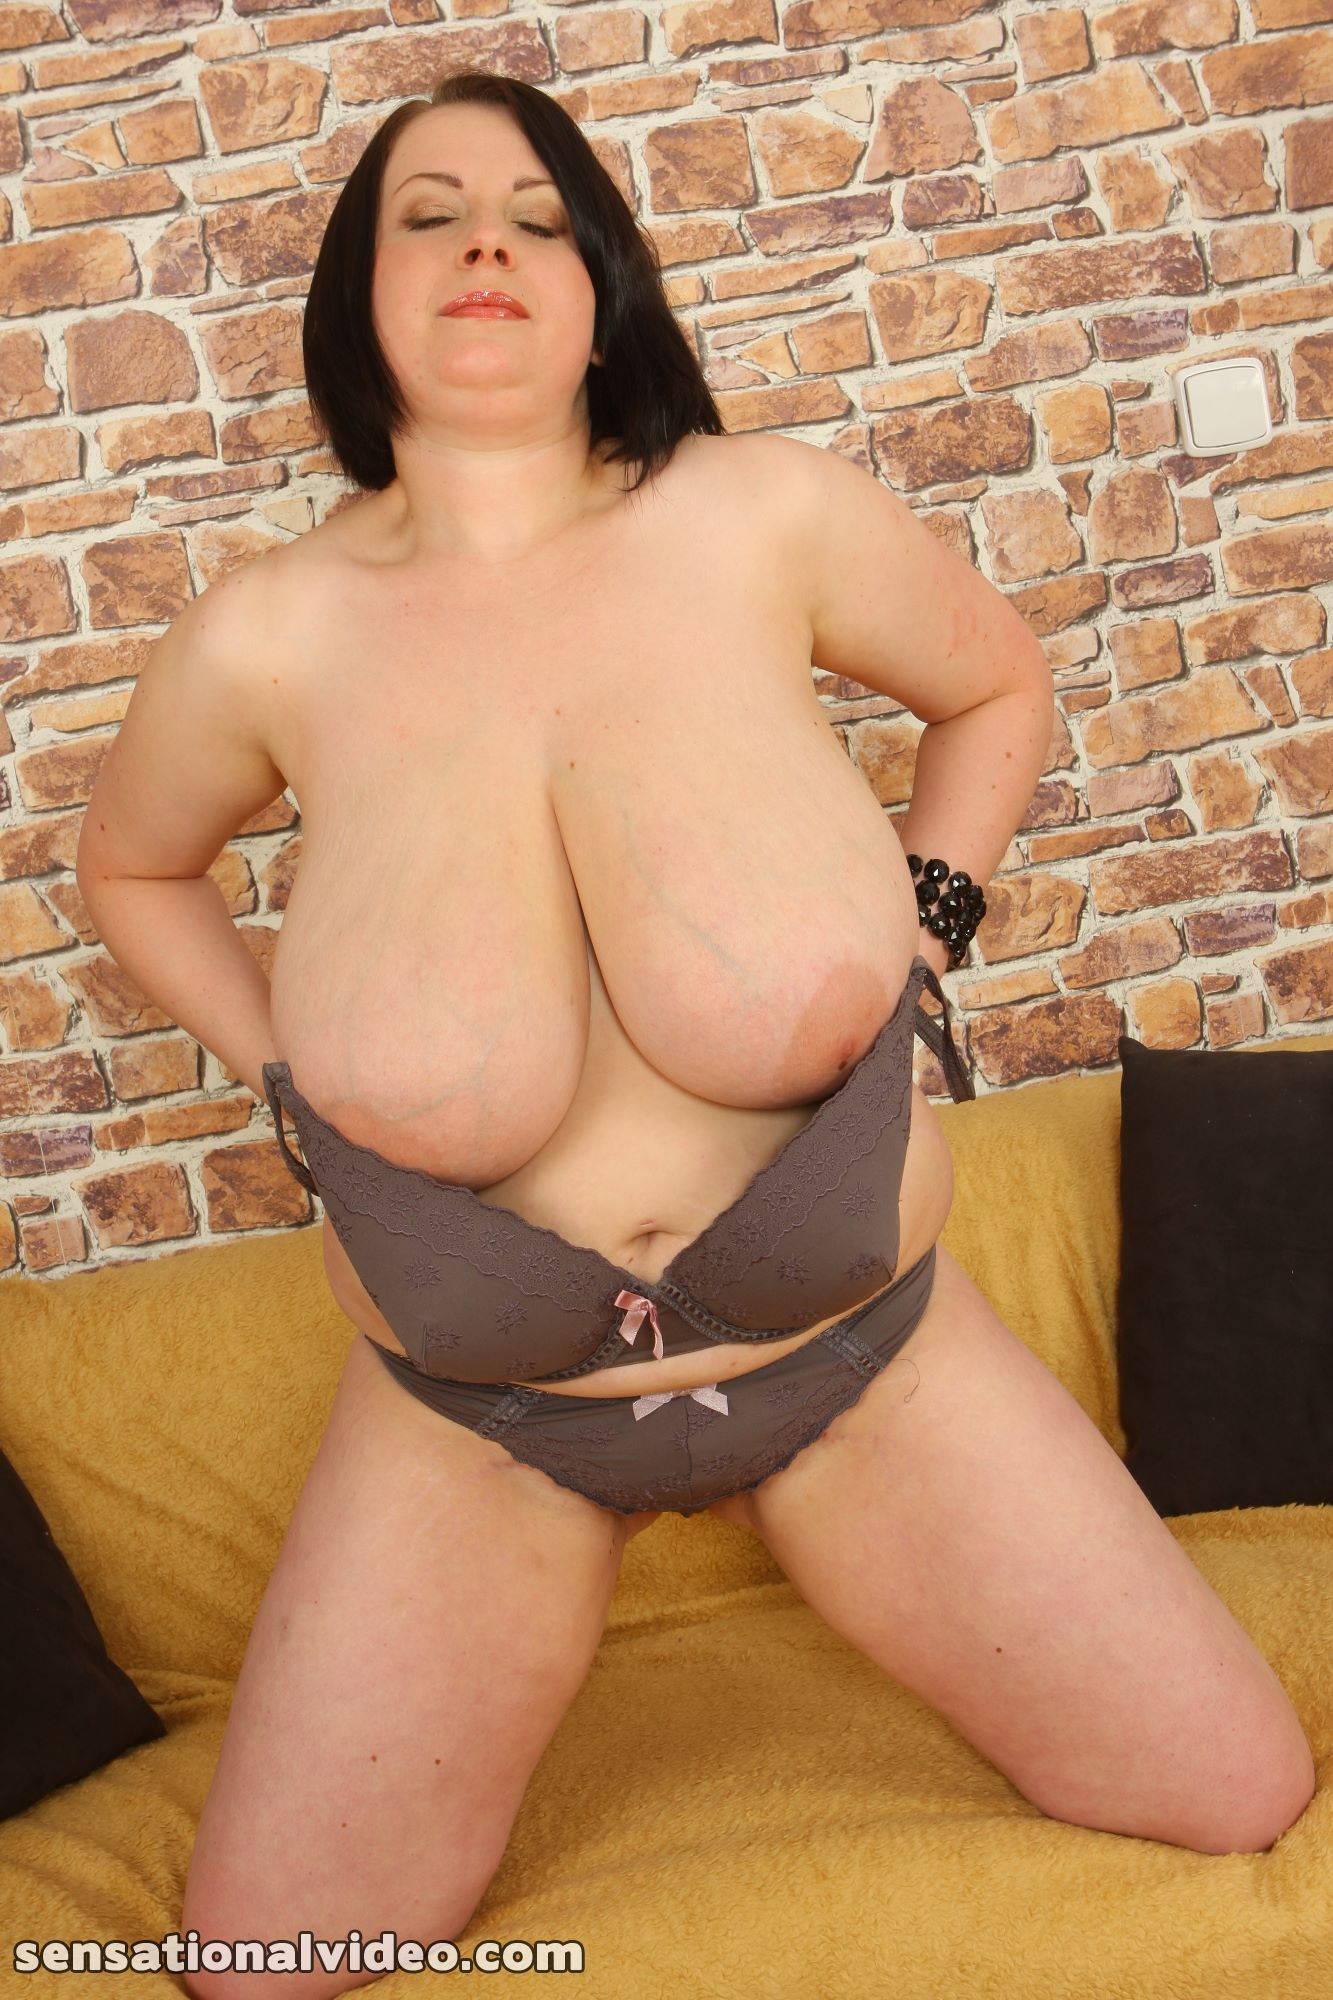 lesgalls spicytitties plumperpass gal535 pic 15